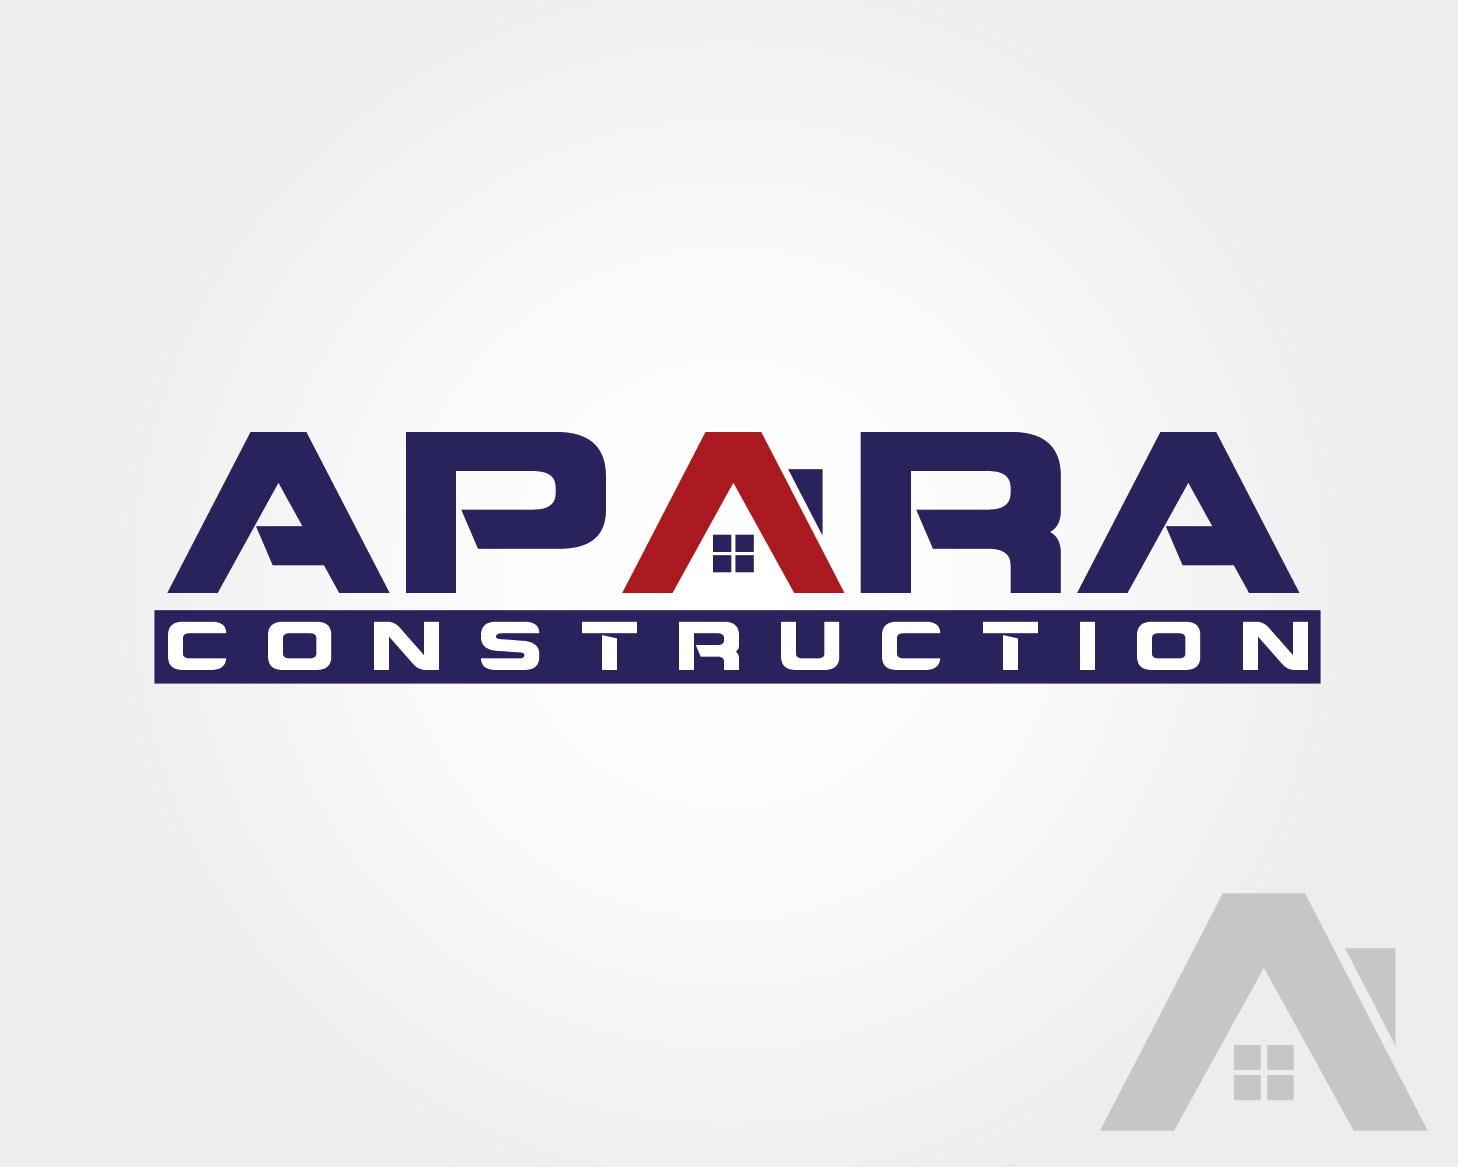 Logo Design by VENTSISLAV KOVACHEV - Entry No. 19 in the Logo Design Contest Apara Construction Logo Design.